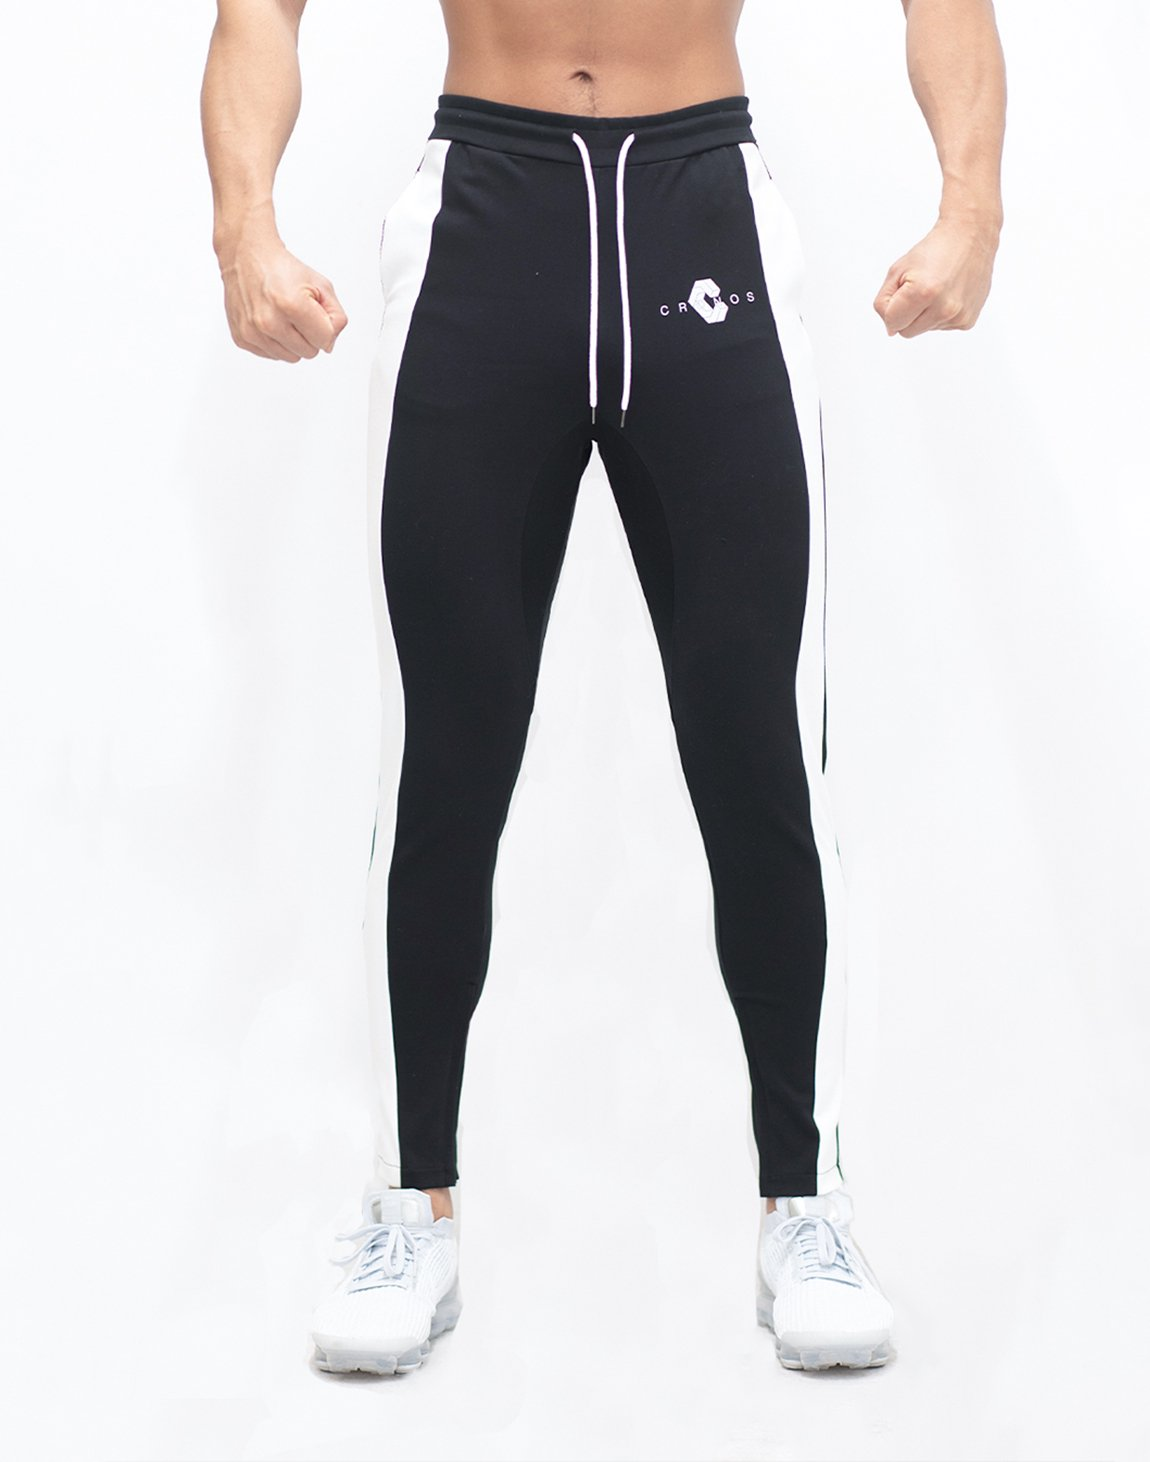 <img class='new_mark_img1' src='https://img.shop-pro.jp/img/new/icons55.gif' style='border:none;display:inline;margin:0px;padding:0px;width:auto;' />Mode Thick line Pants【BLACK】Restock